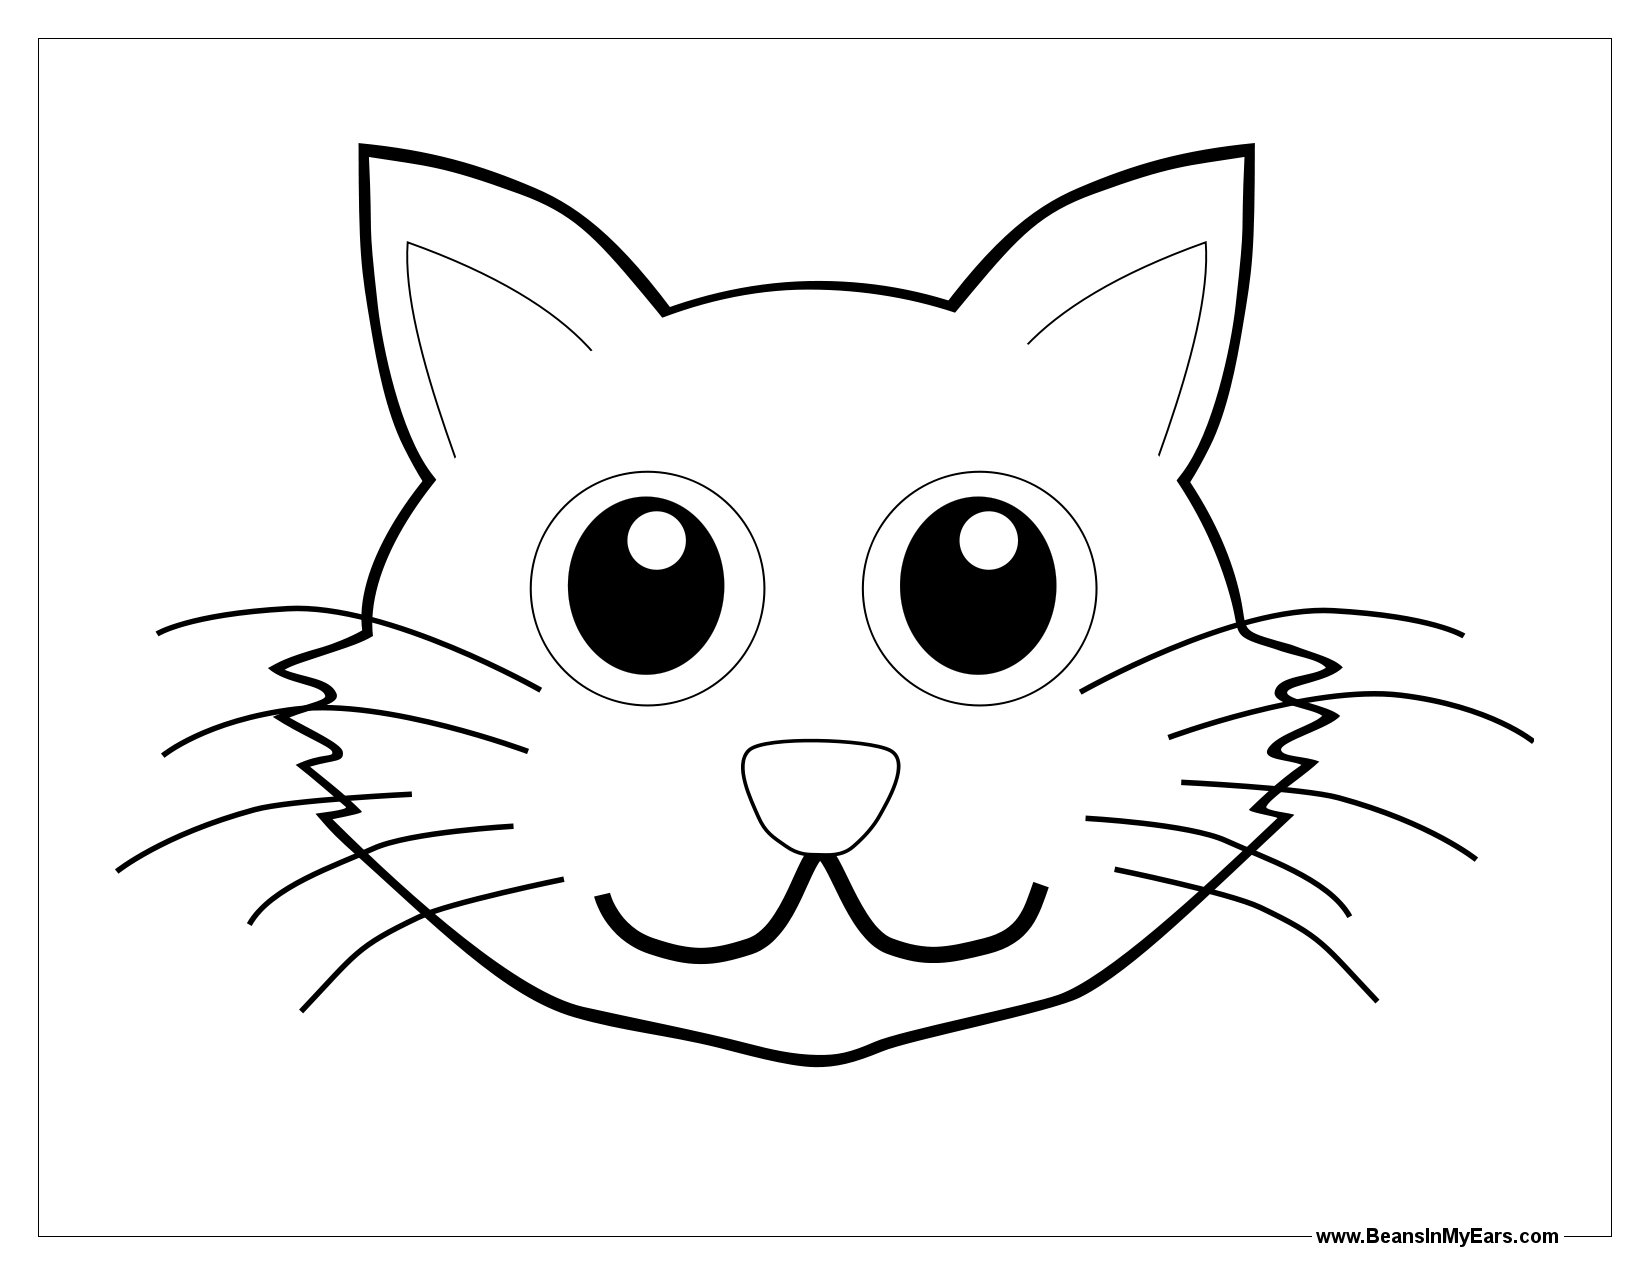 1650x1275 Coloring Pages Of Puppy Faces Gtm Ccamish Clip Art Library Cat